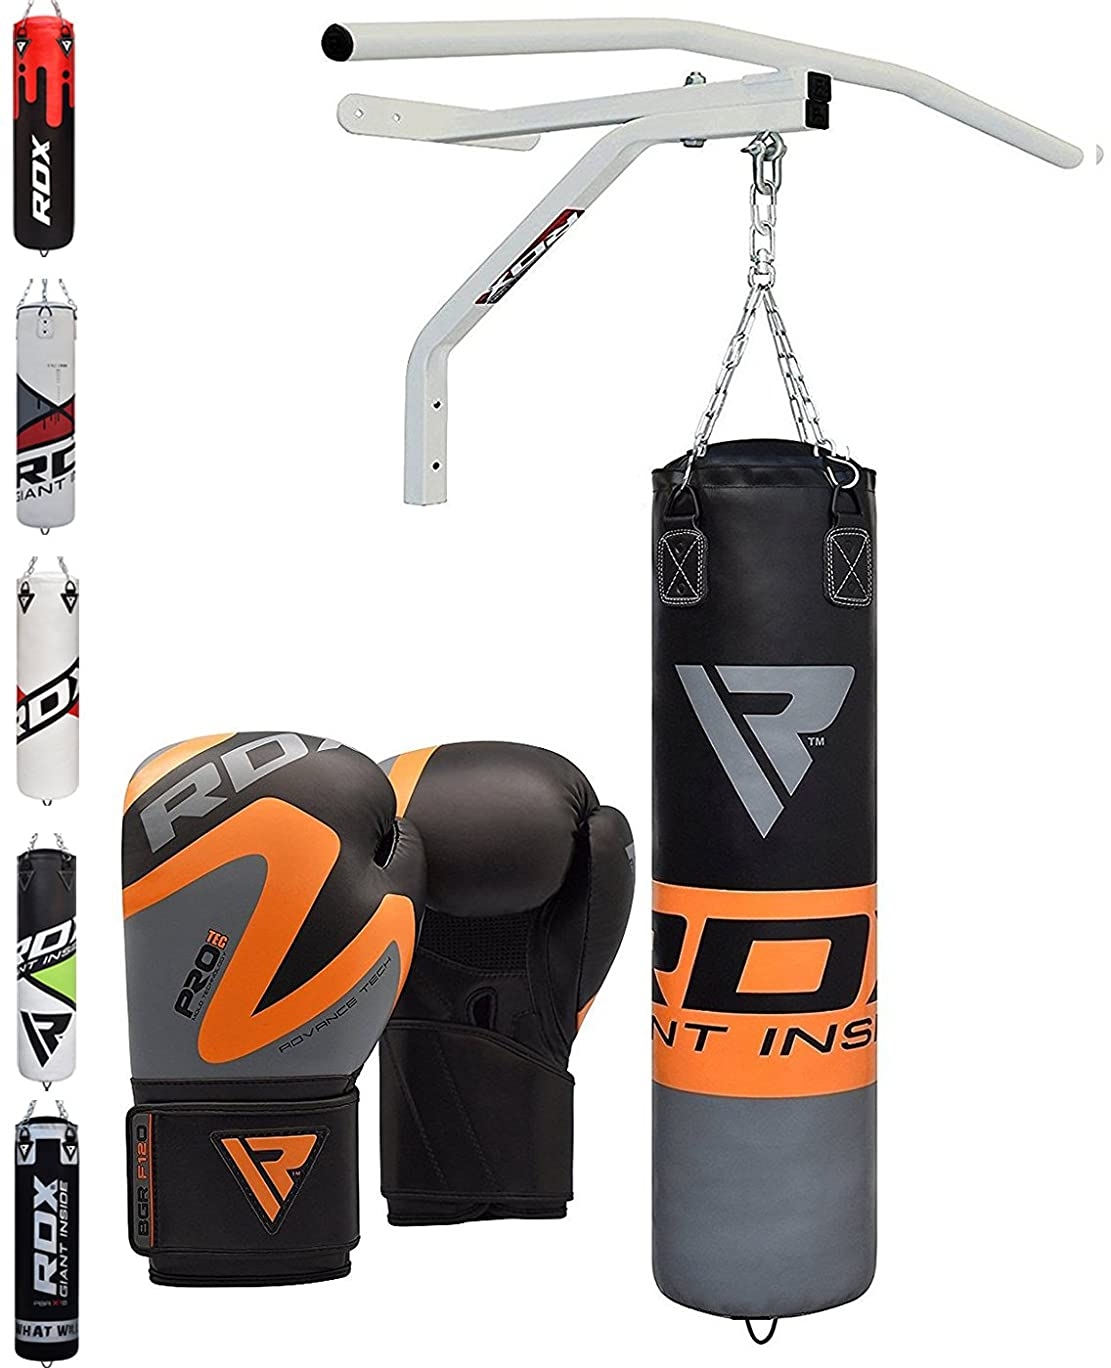 Authentic RDX Leather MMA Grappling Gloves Fight Boxing Muay Thai Punch Bag Mitts Red